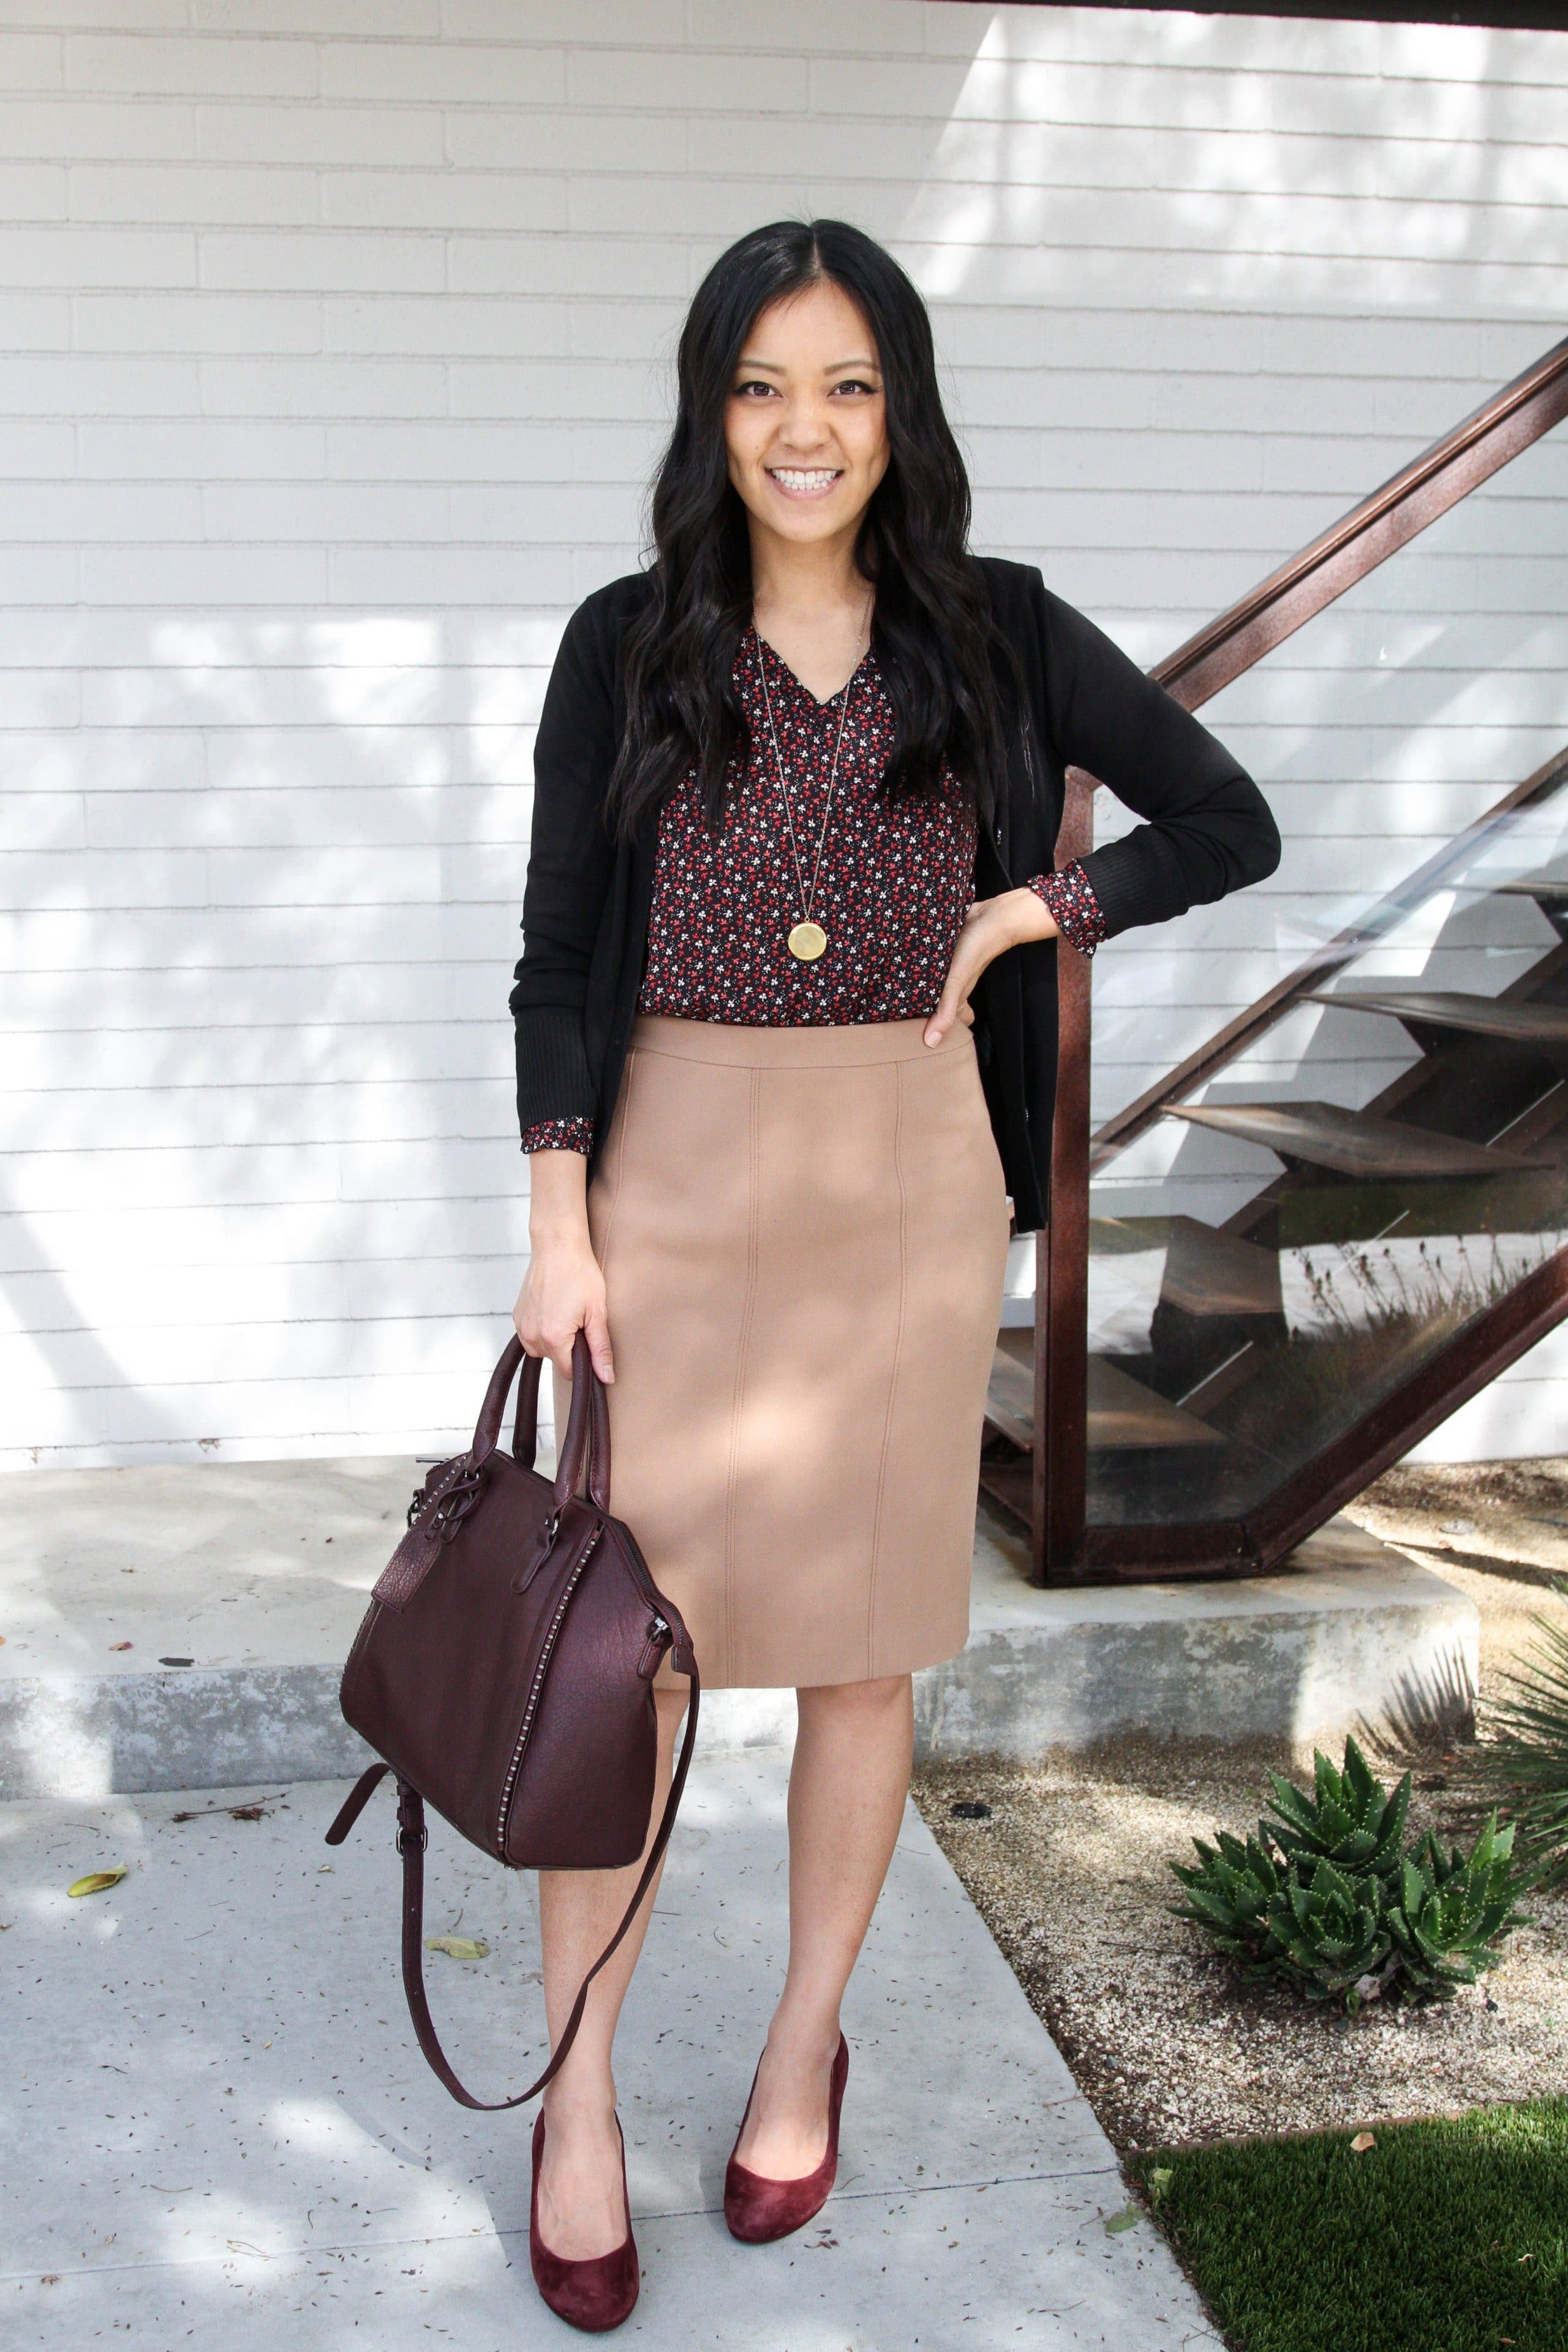 Business Casual: Tan Pencil Skirt + Floral Blouse + Black Cardigan + Pumps + Gold Necklace